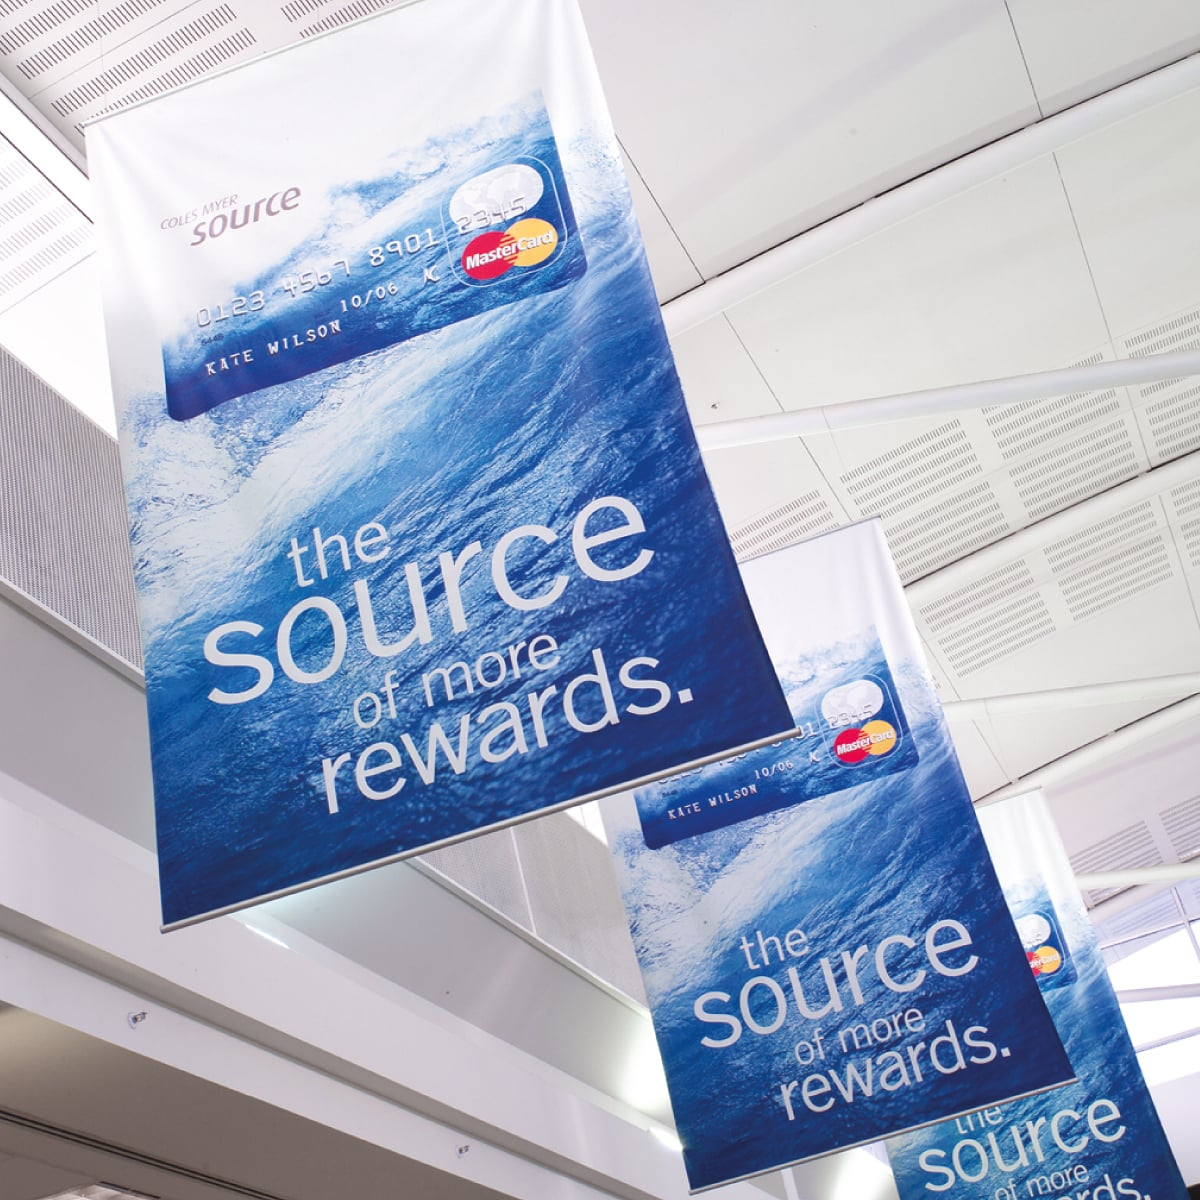 Davidson Branding Retail Coles Myer Source Card Banner